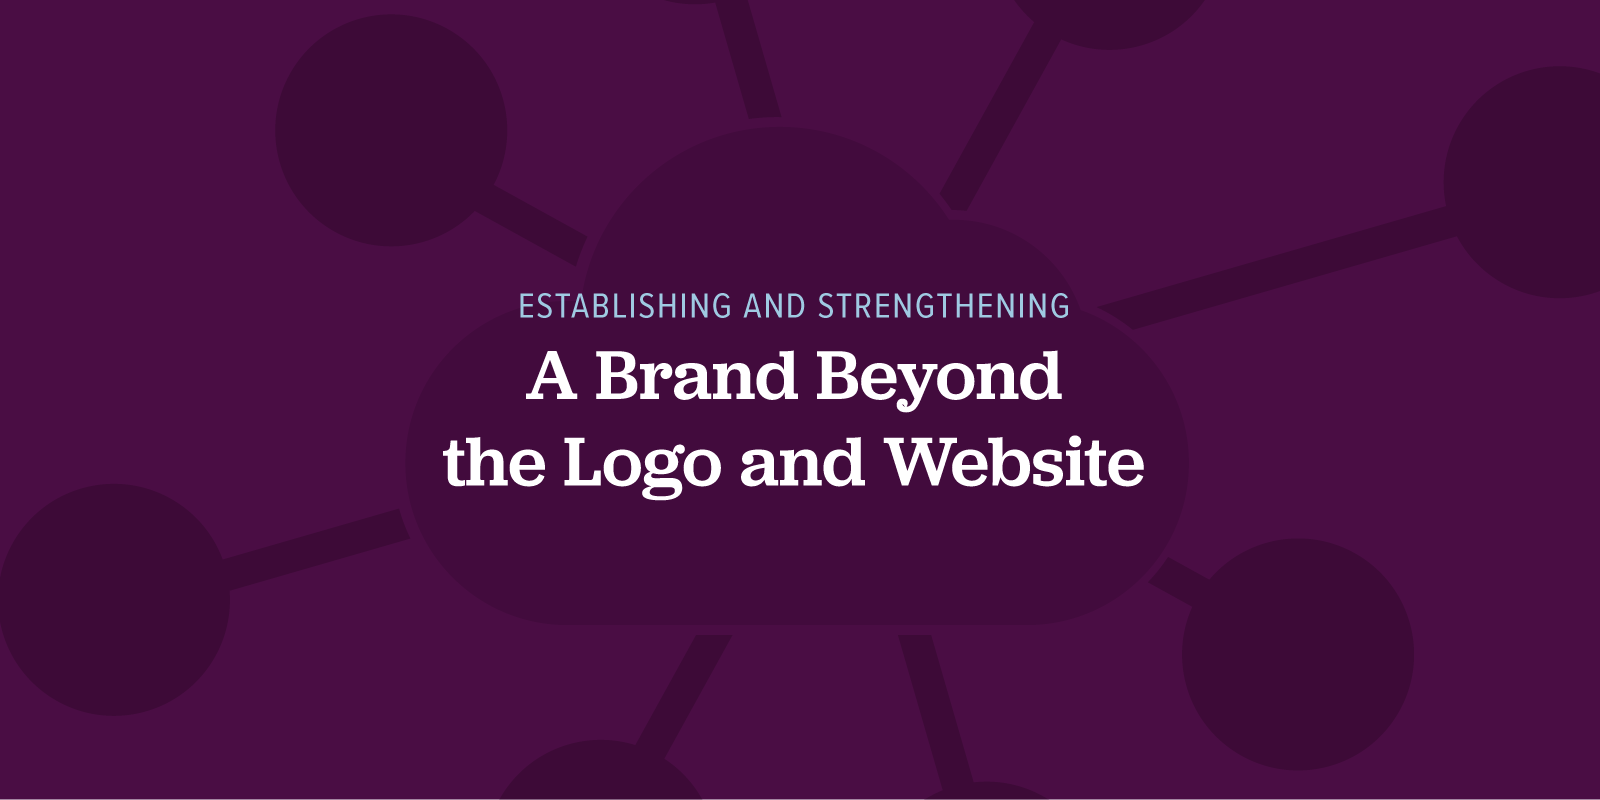 Establishing and strengthening a brand beyond the logo and website